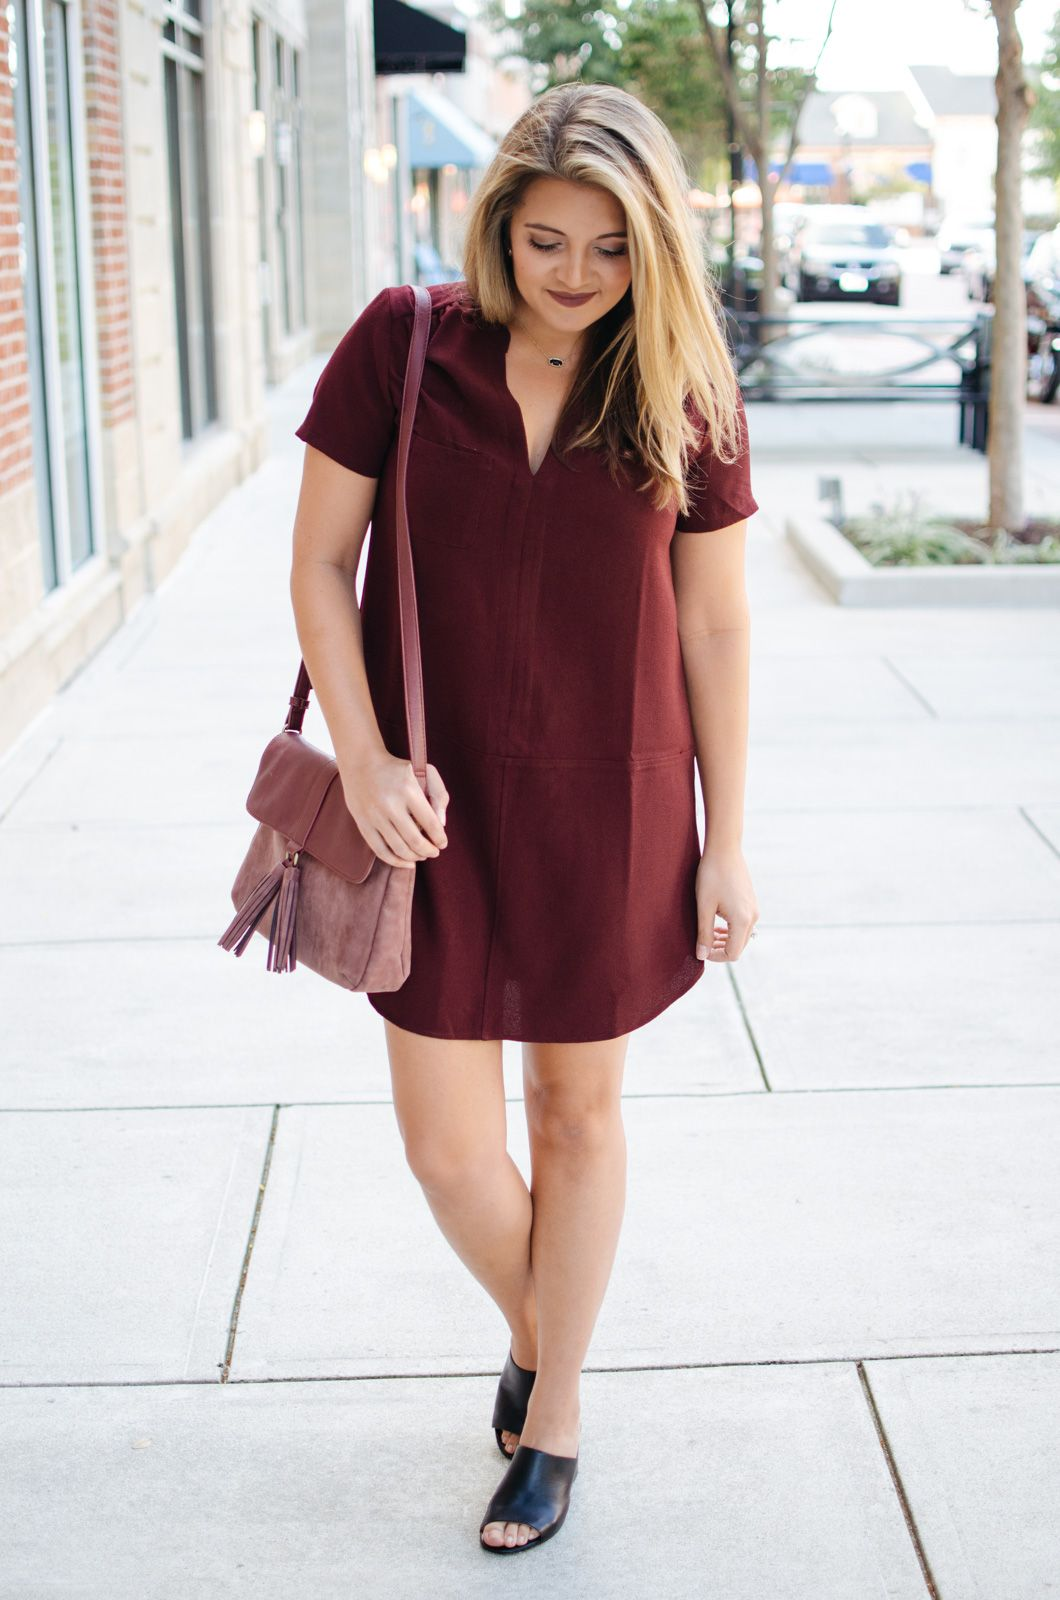 ee687a1c2e76 Must-have Fall Dress